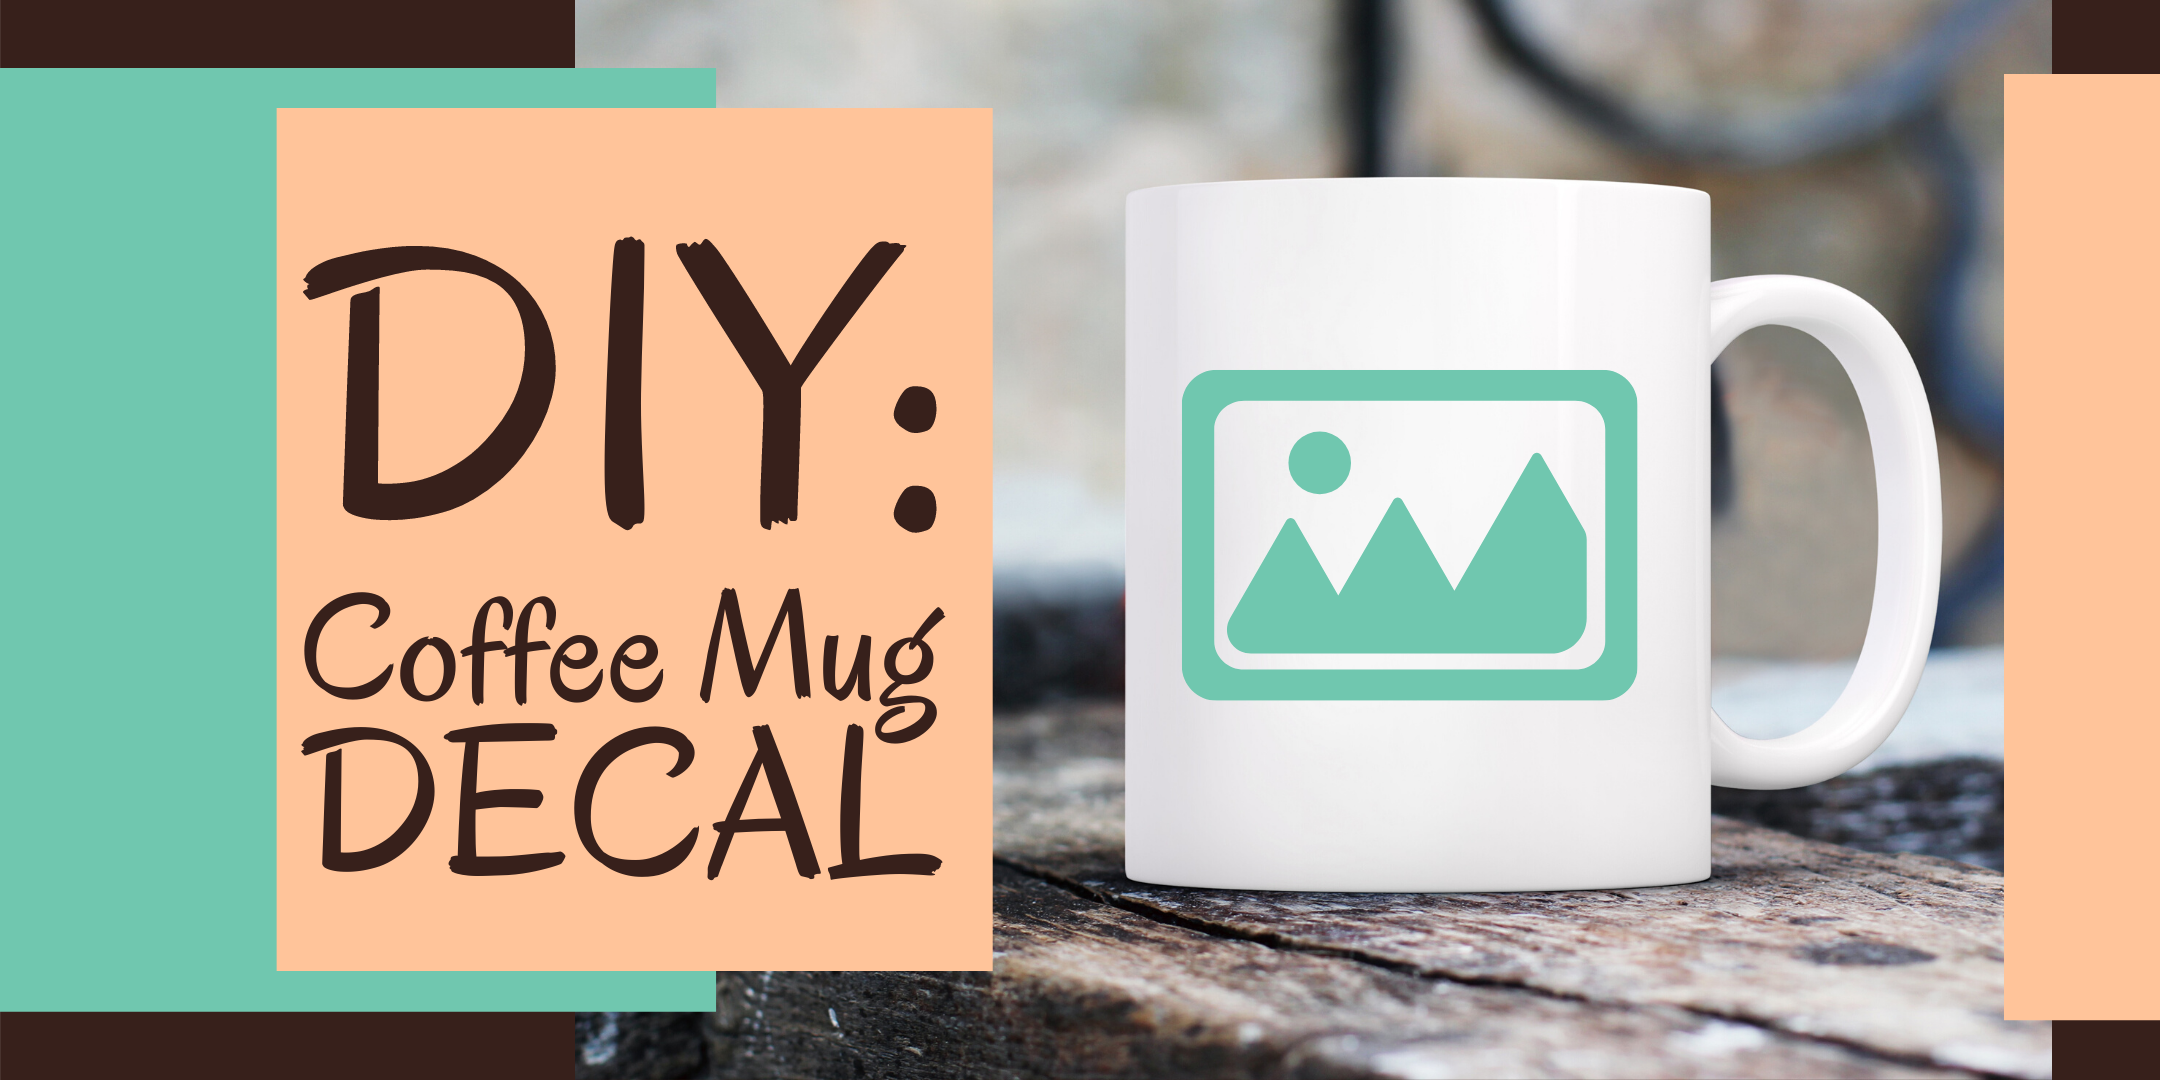 Diy Coffee Mug Decal With The Vinyl Cutter For Ages 12 Lake Forest Library